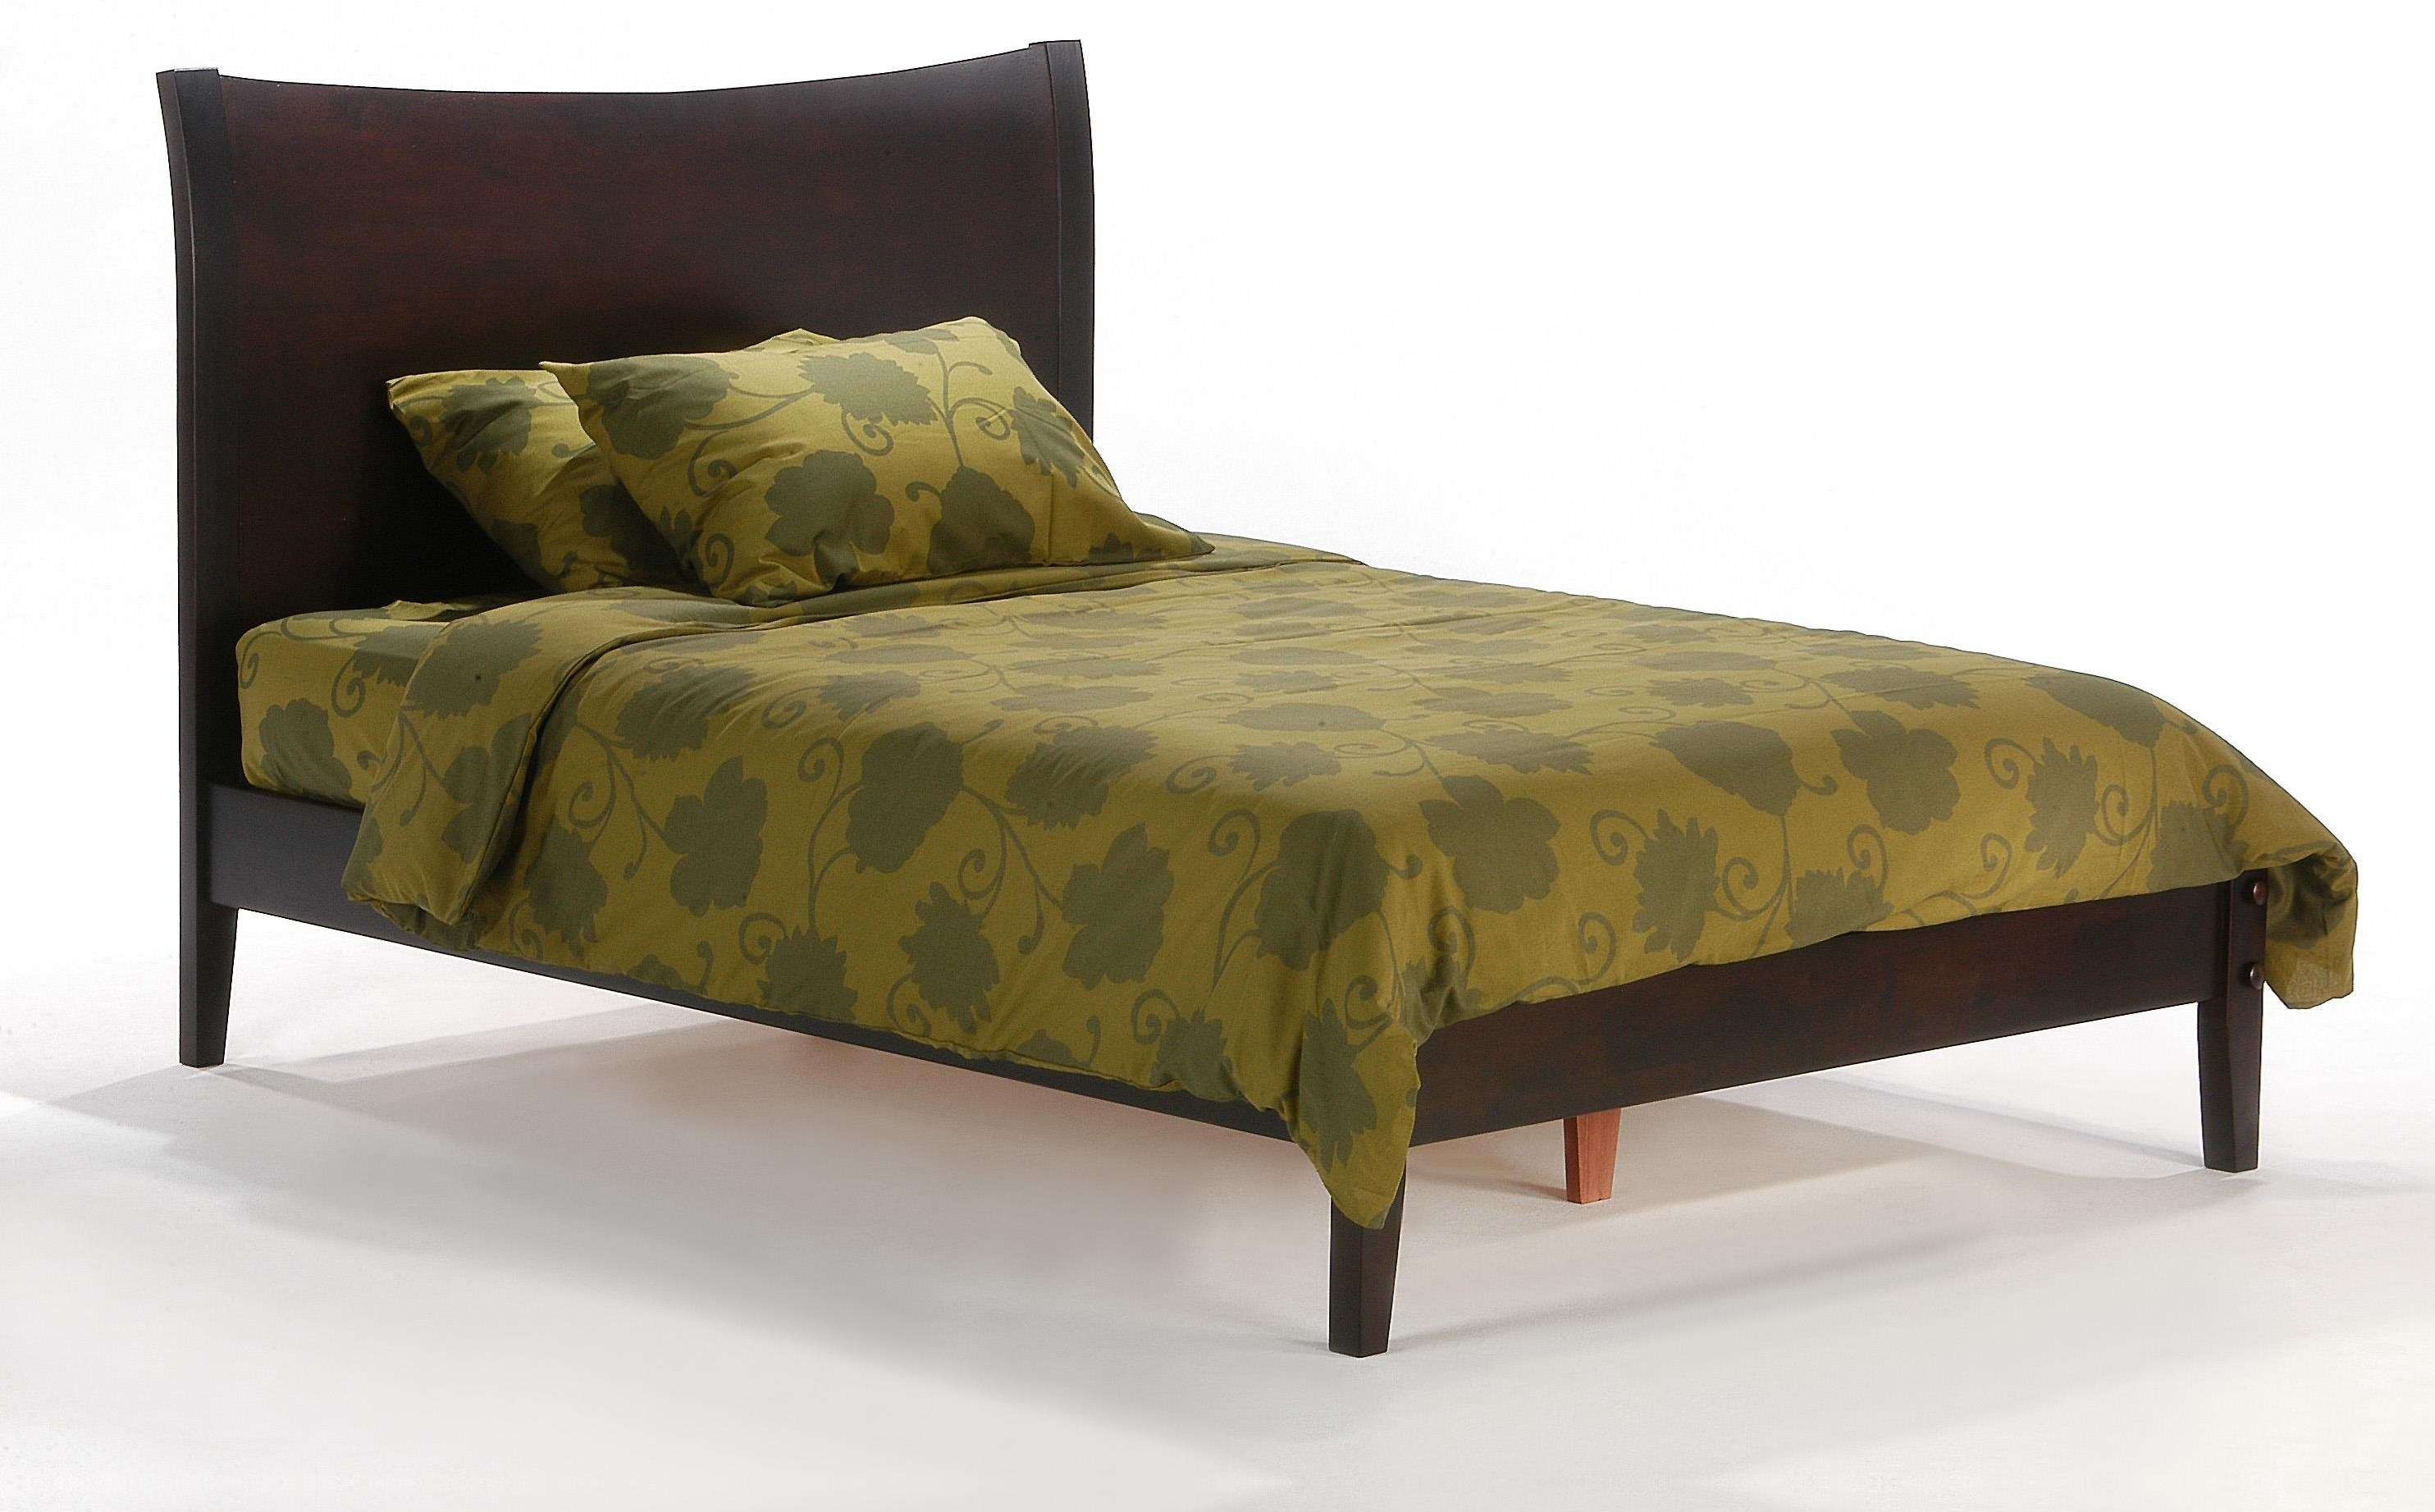 Blackpepper - Chocolate Queen Bed by Pacific Manufacturing at SlumberWorld